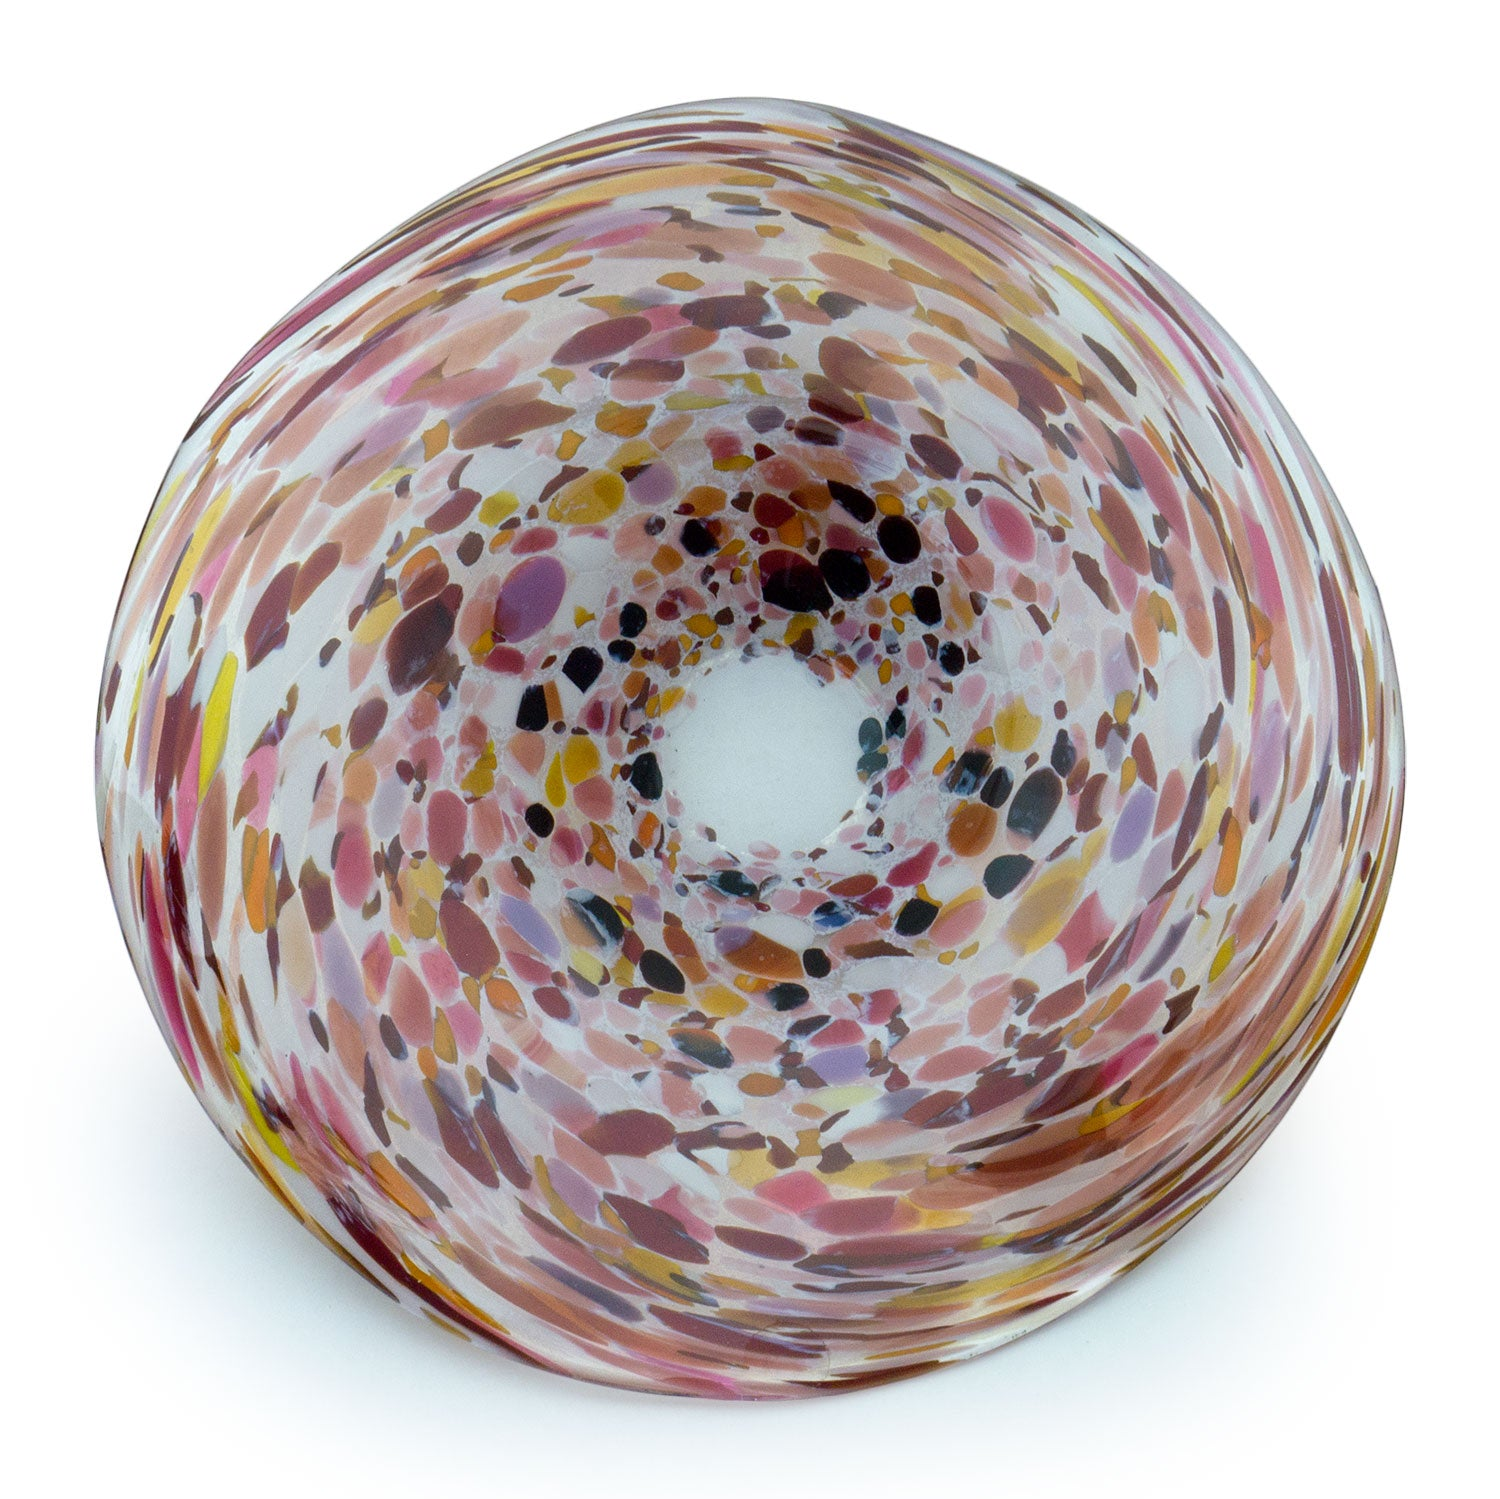 Confetti Crunch in 2 colourways & 3 shapes - SHAKSPEARE GLASS